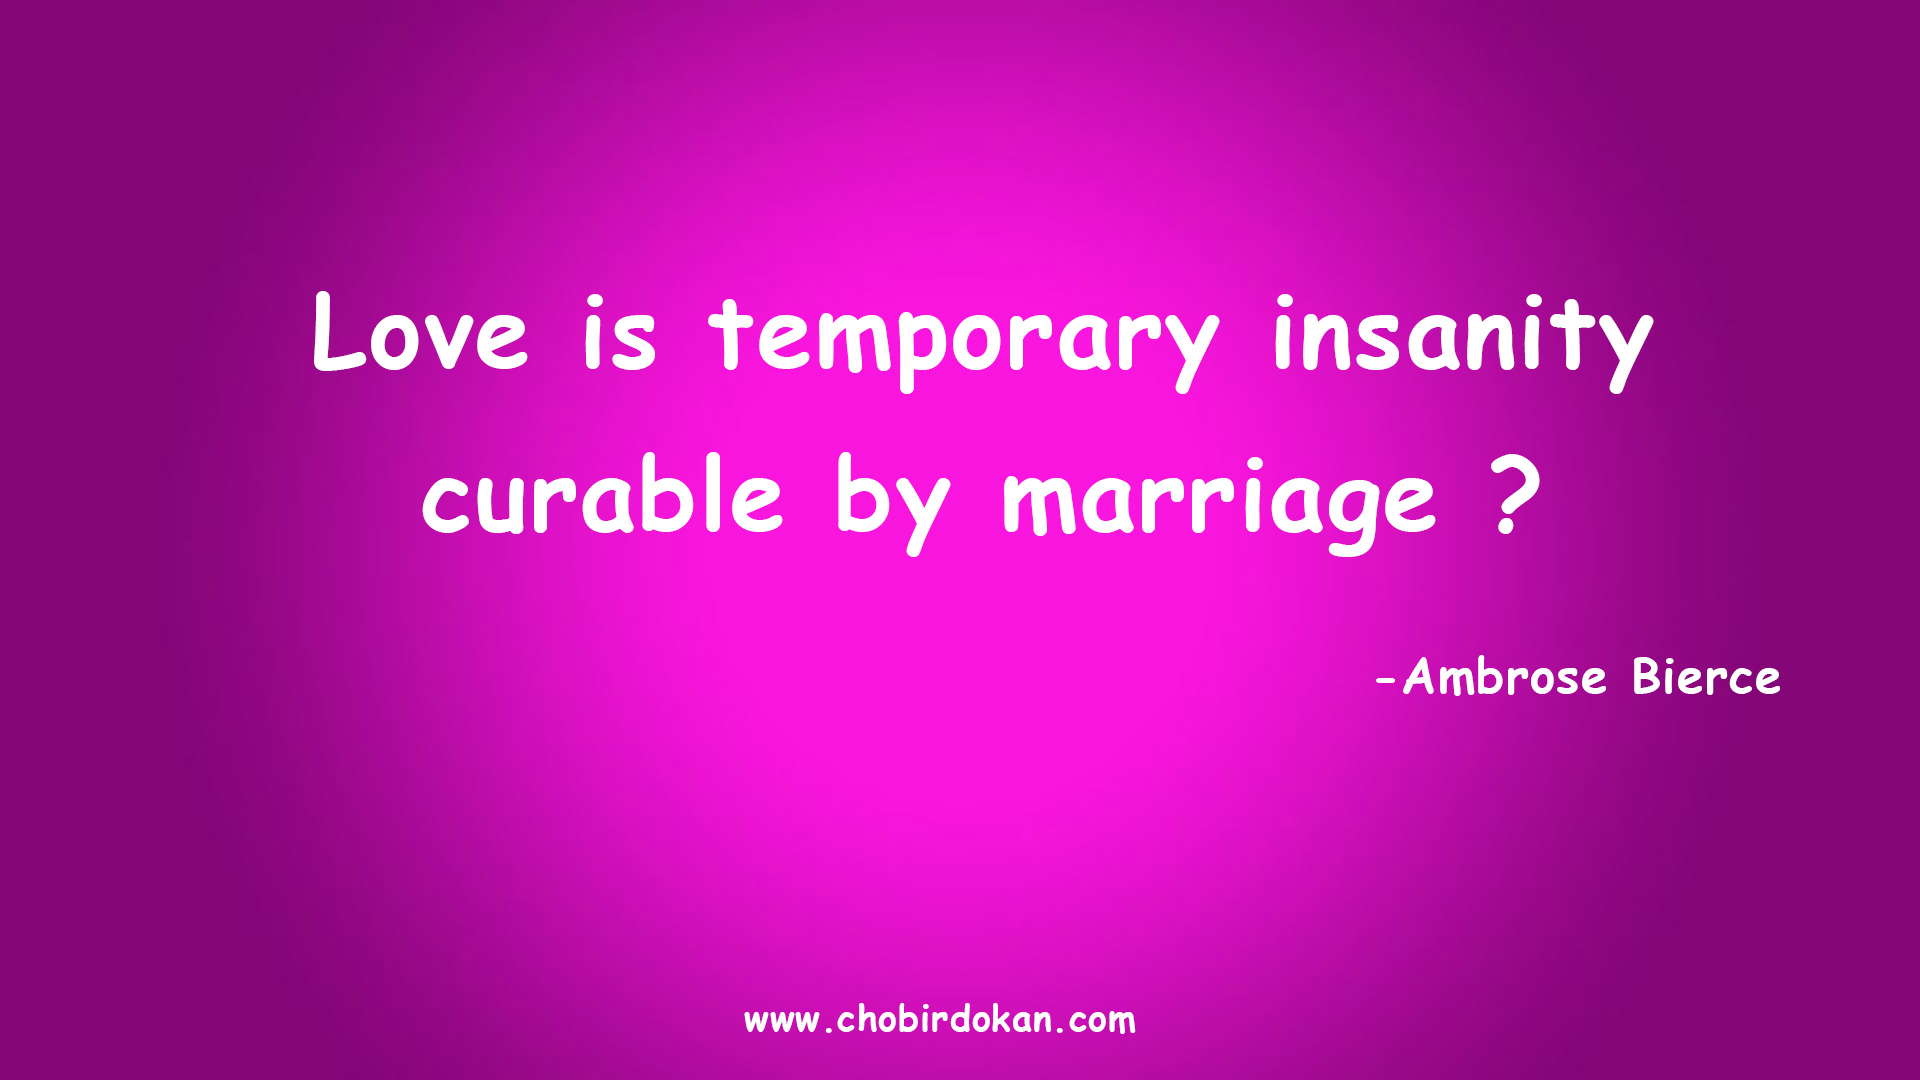 Quotes On Love And Marriage Funny Quotes Love Marriage  Dobre For